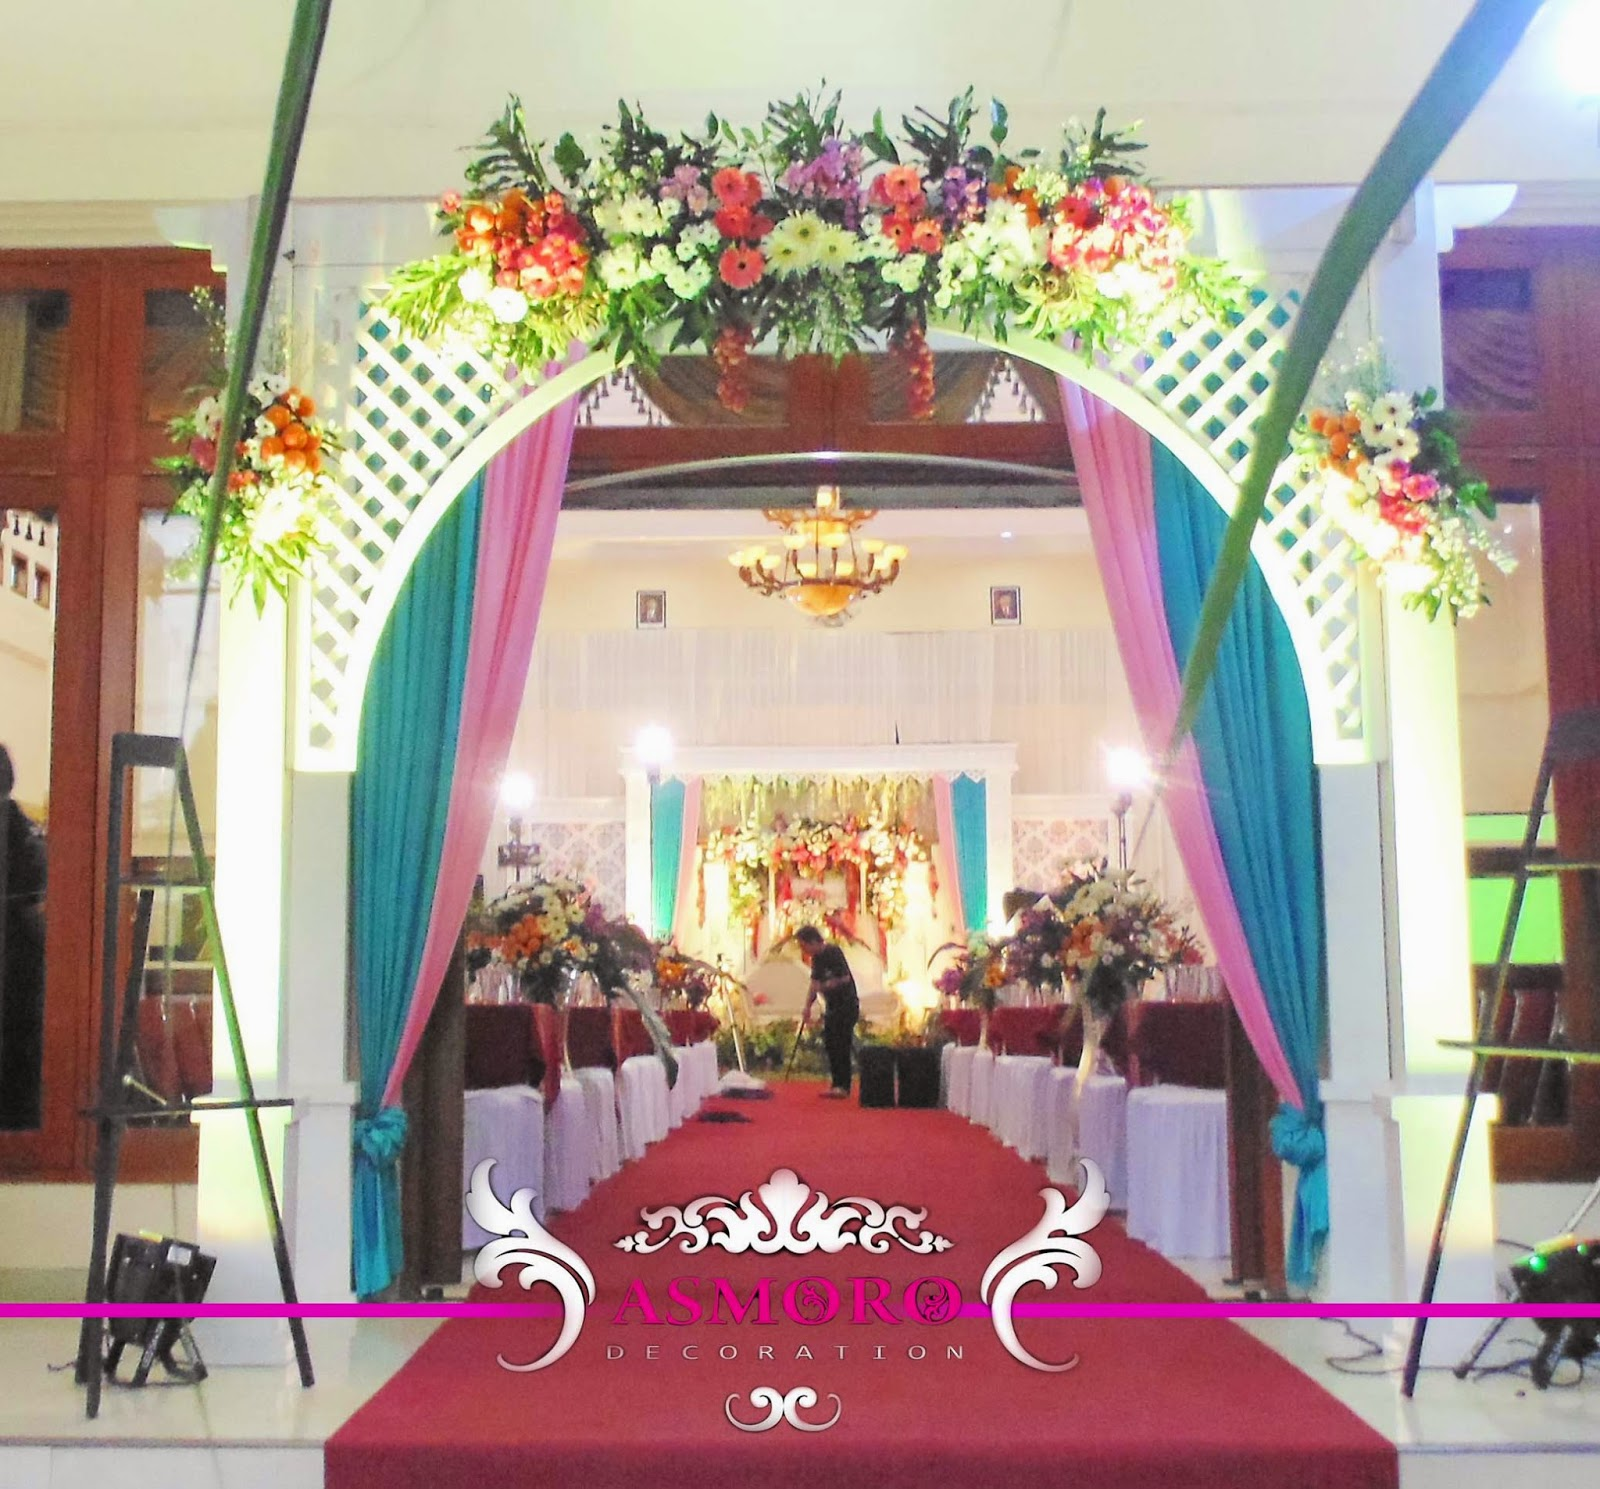 Dekorasi solo asmoro decoration desember 2014 for Asmoro decoration